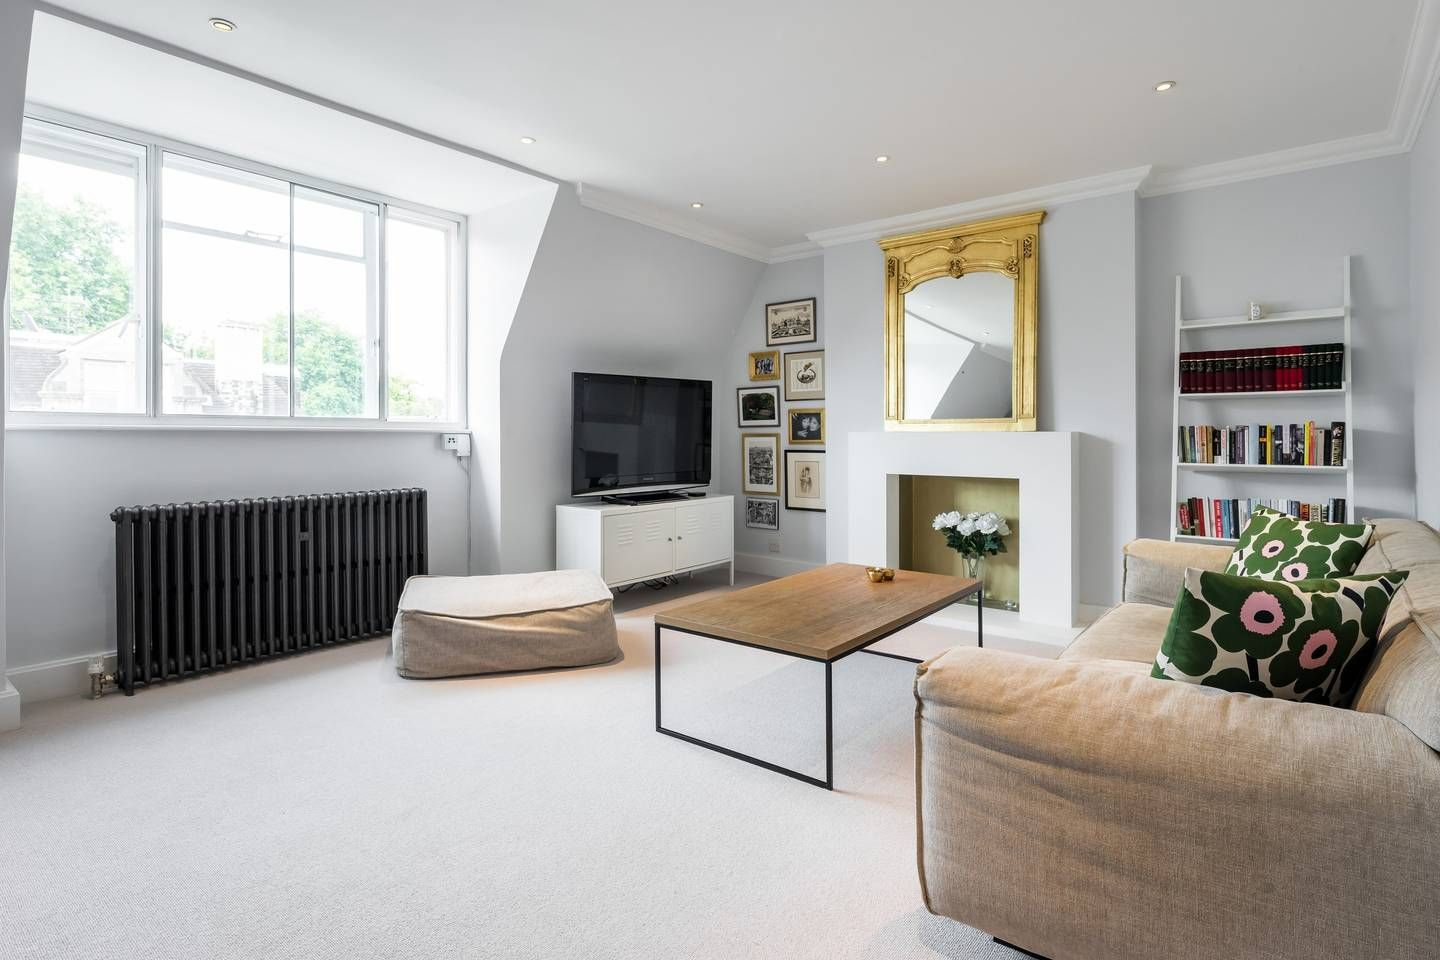 Sumptuous 2 Bed 2 Bath In Chelsea Flat Rent Home Room